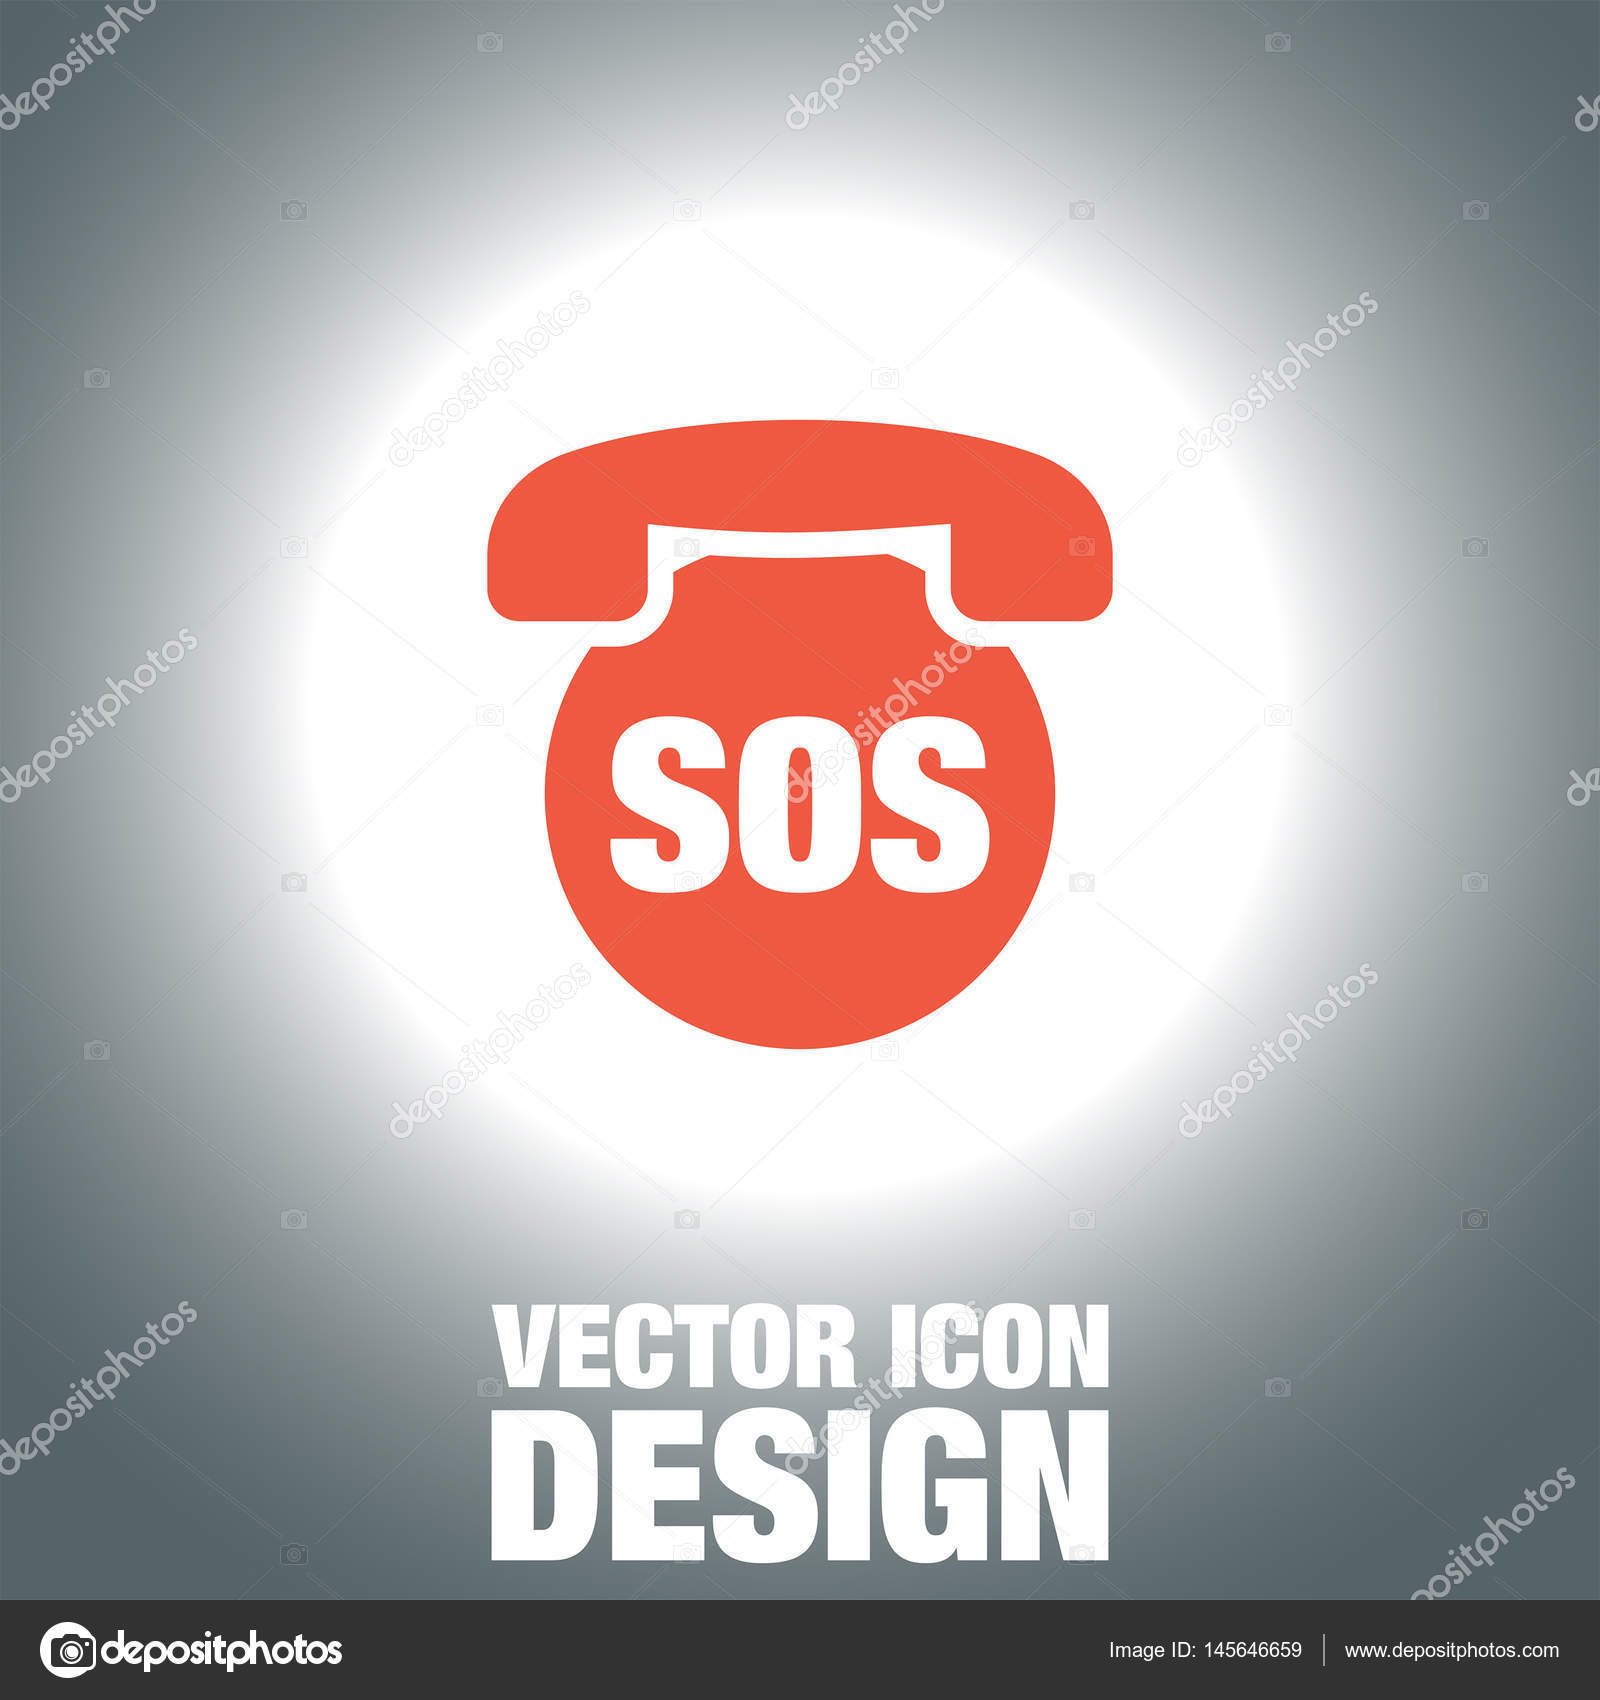 SOS Phone Vector Icon Emergency Contact Sign EMS Cell Service Symbol By Quka